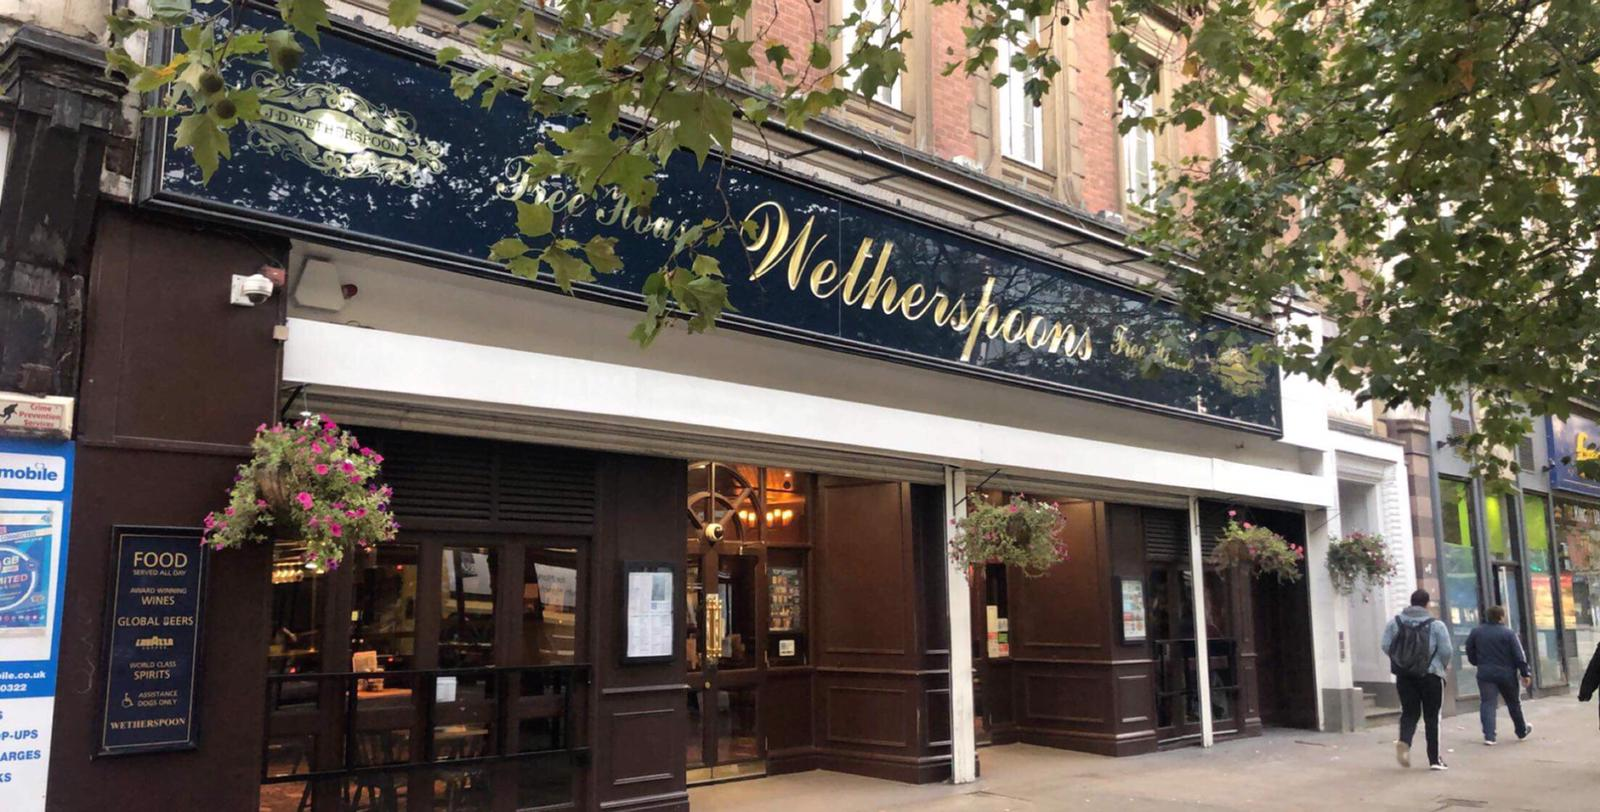 Wetherspoons | Pubs In Manchester - J D Wetherspoon